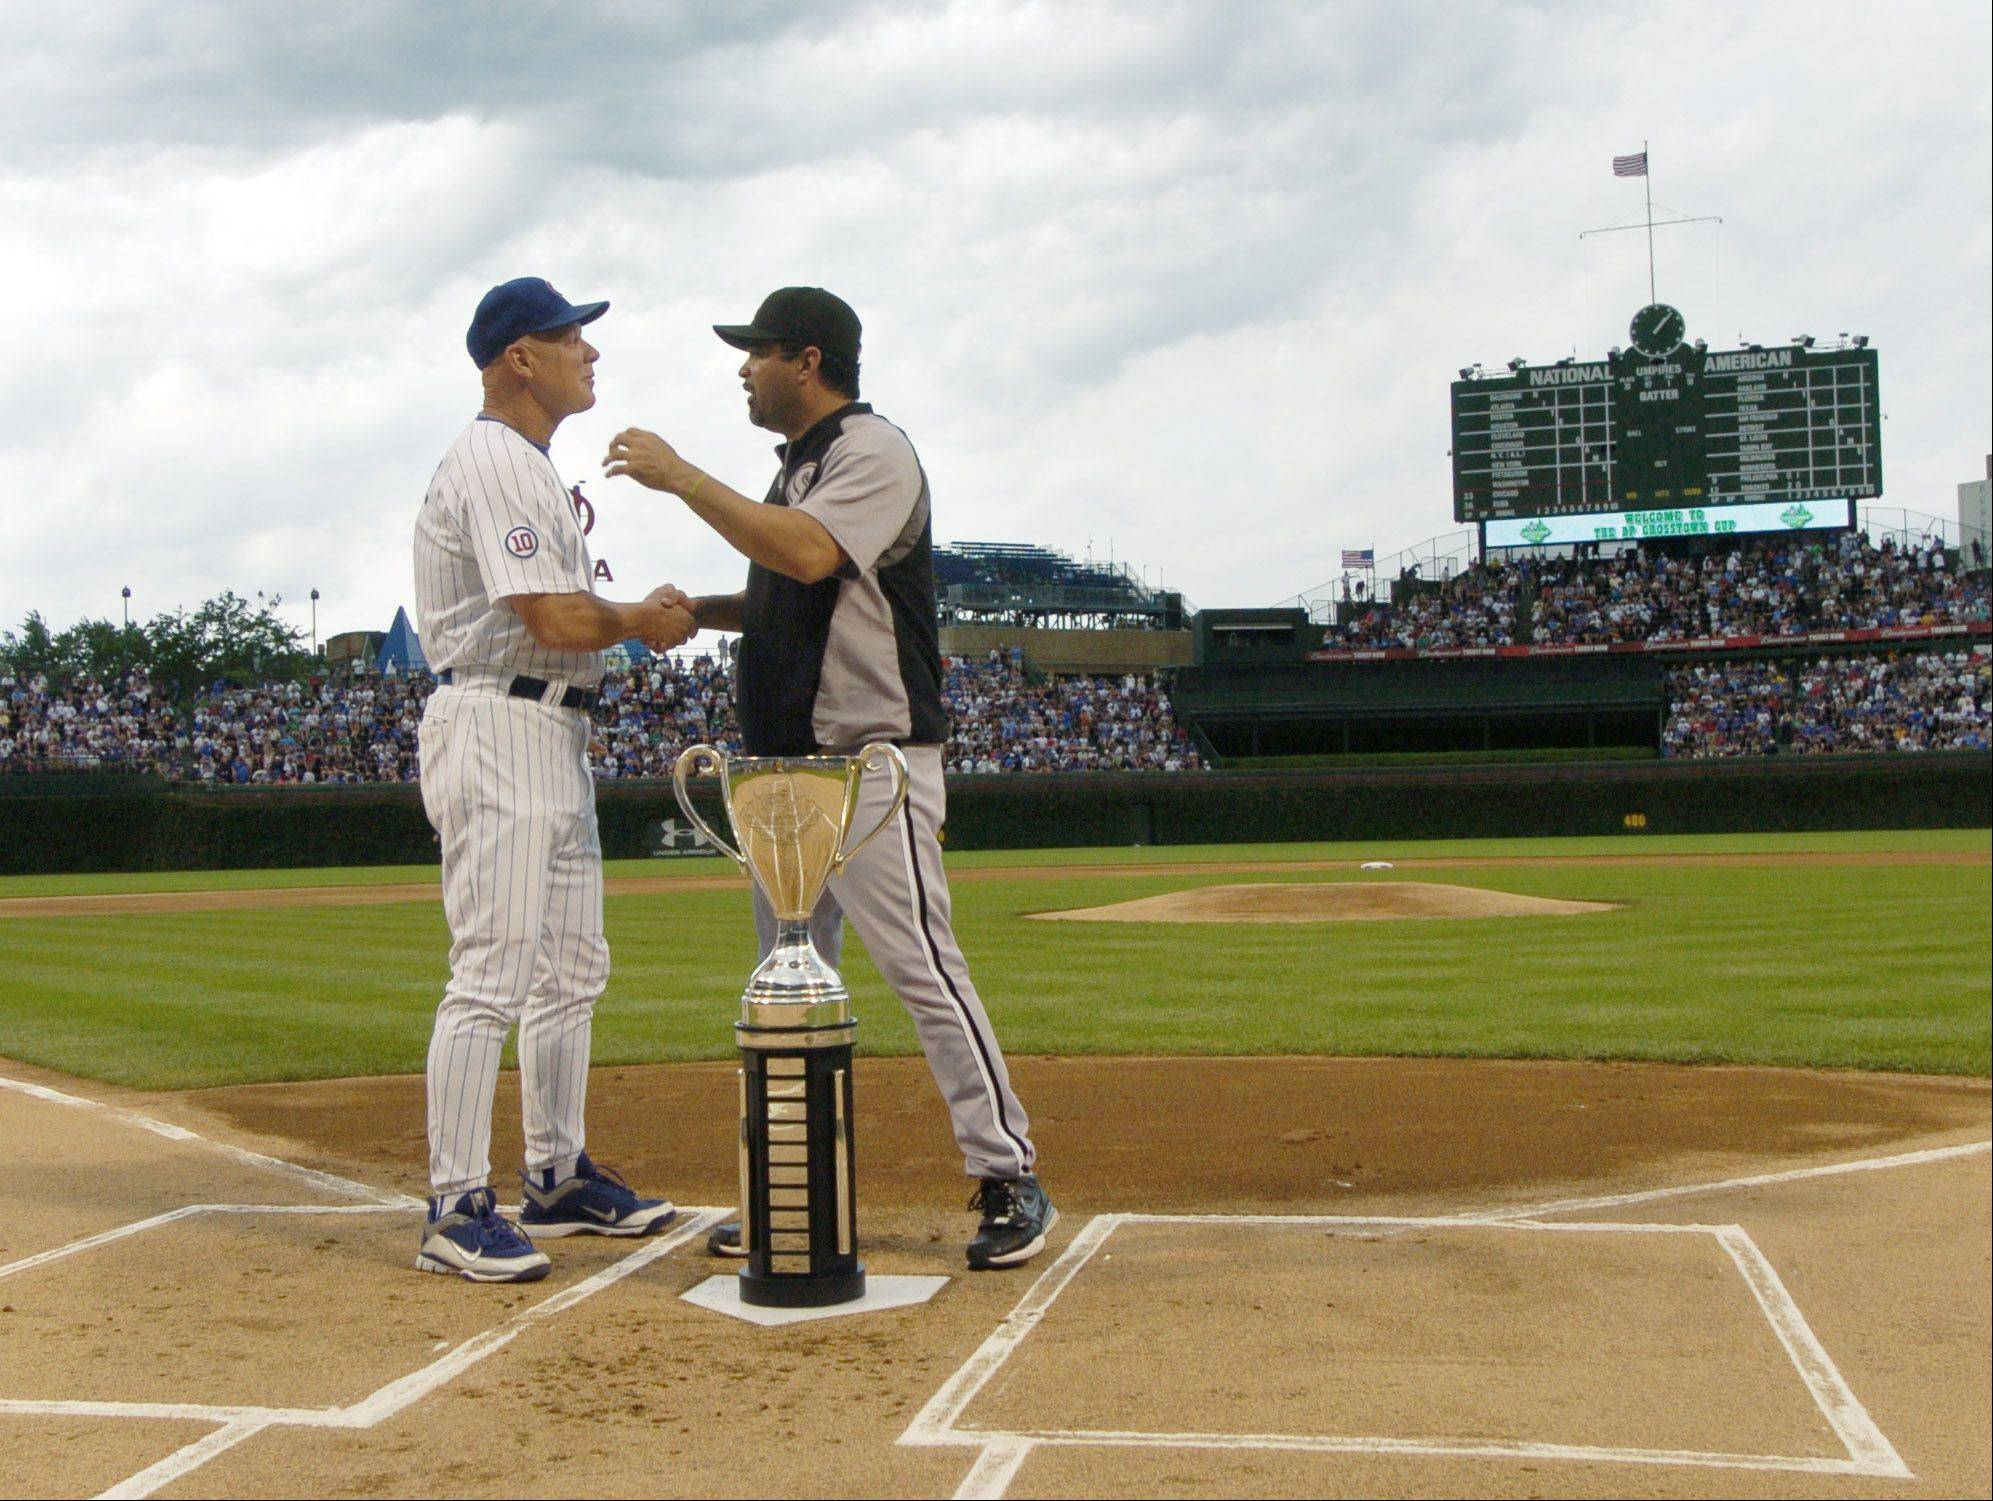 Images: Cubs vs. Sox at Wrigley Field, game one.